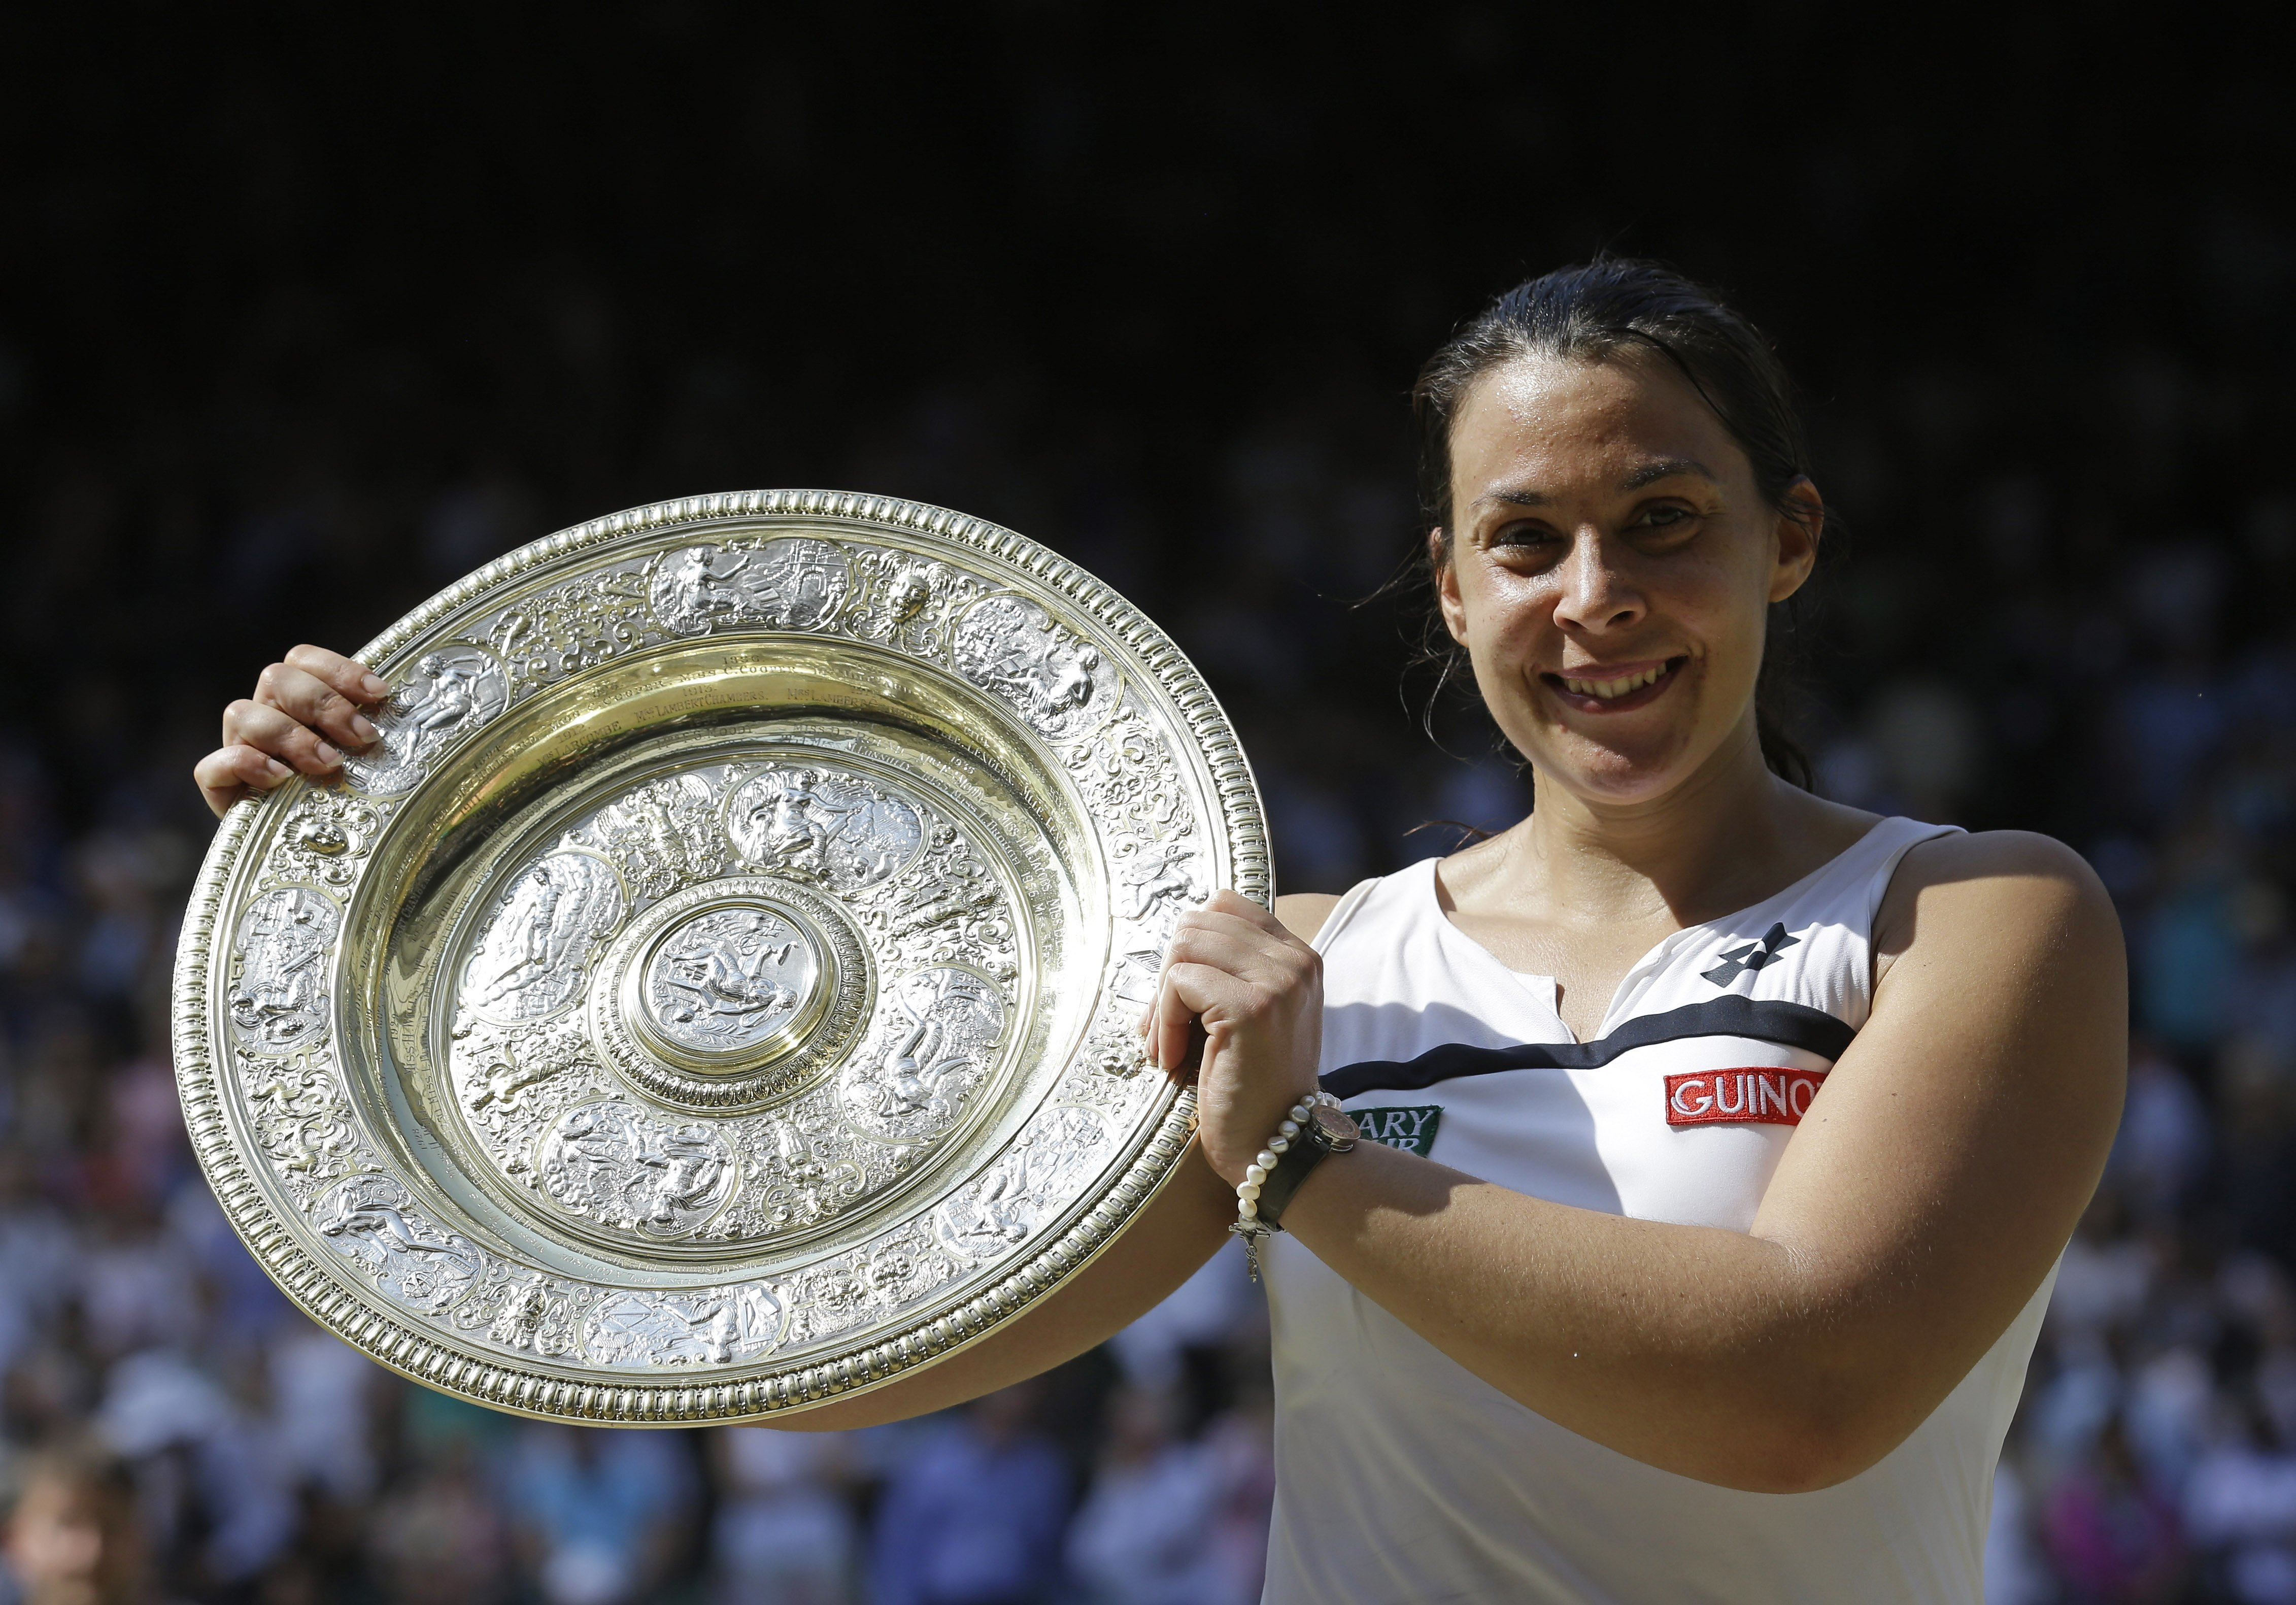 FILE - A  Saturday, July 6, 2013 file photo showing Marion Bartoli of France smiling as she holds the trophy after winning the Women's singles final match against Sabine Lisicki of Germany at the All England Lawn Tennis Championships in Wimbledon, London.